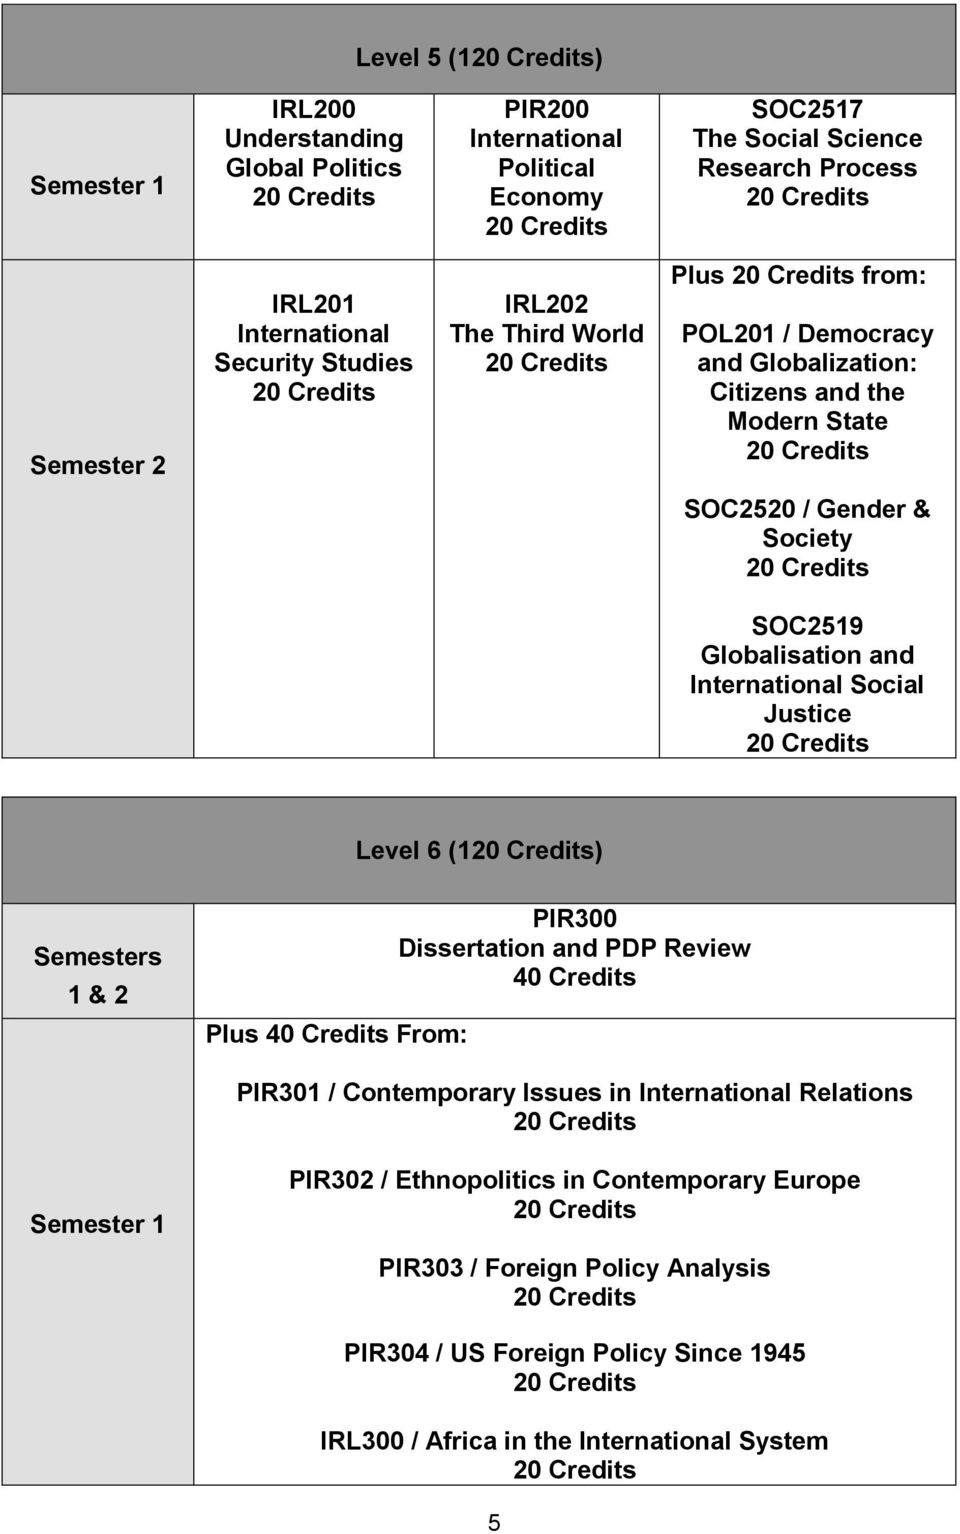 Social Justice Level 6 (1) Semesters 1 & 2 Plus 40 Credits From: PIR300 Dissertation and PDP Review 40 Credits PIR301 / Contemporary Issues in